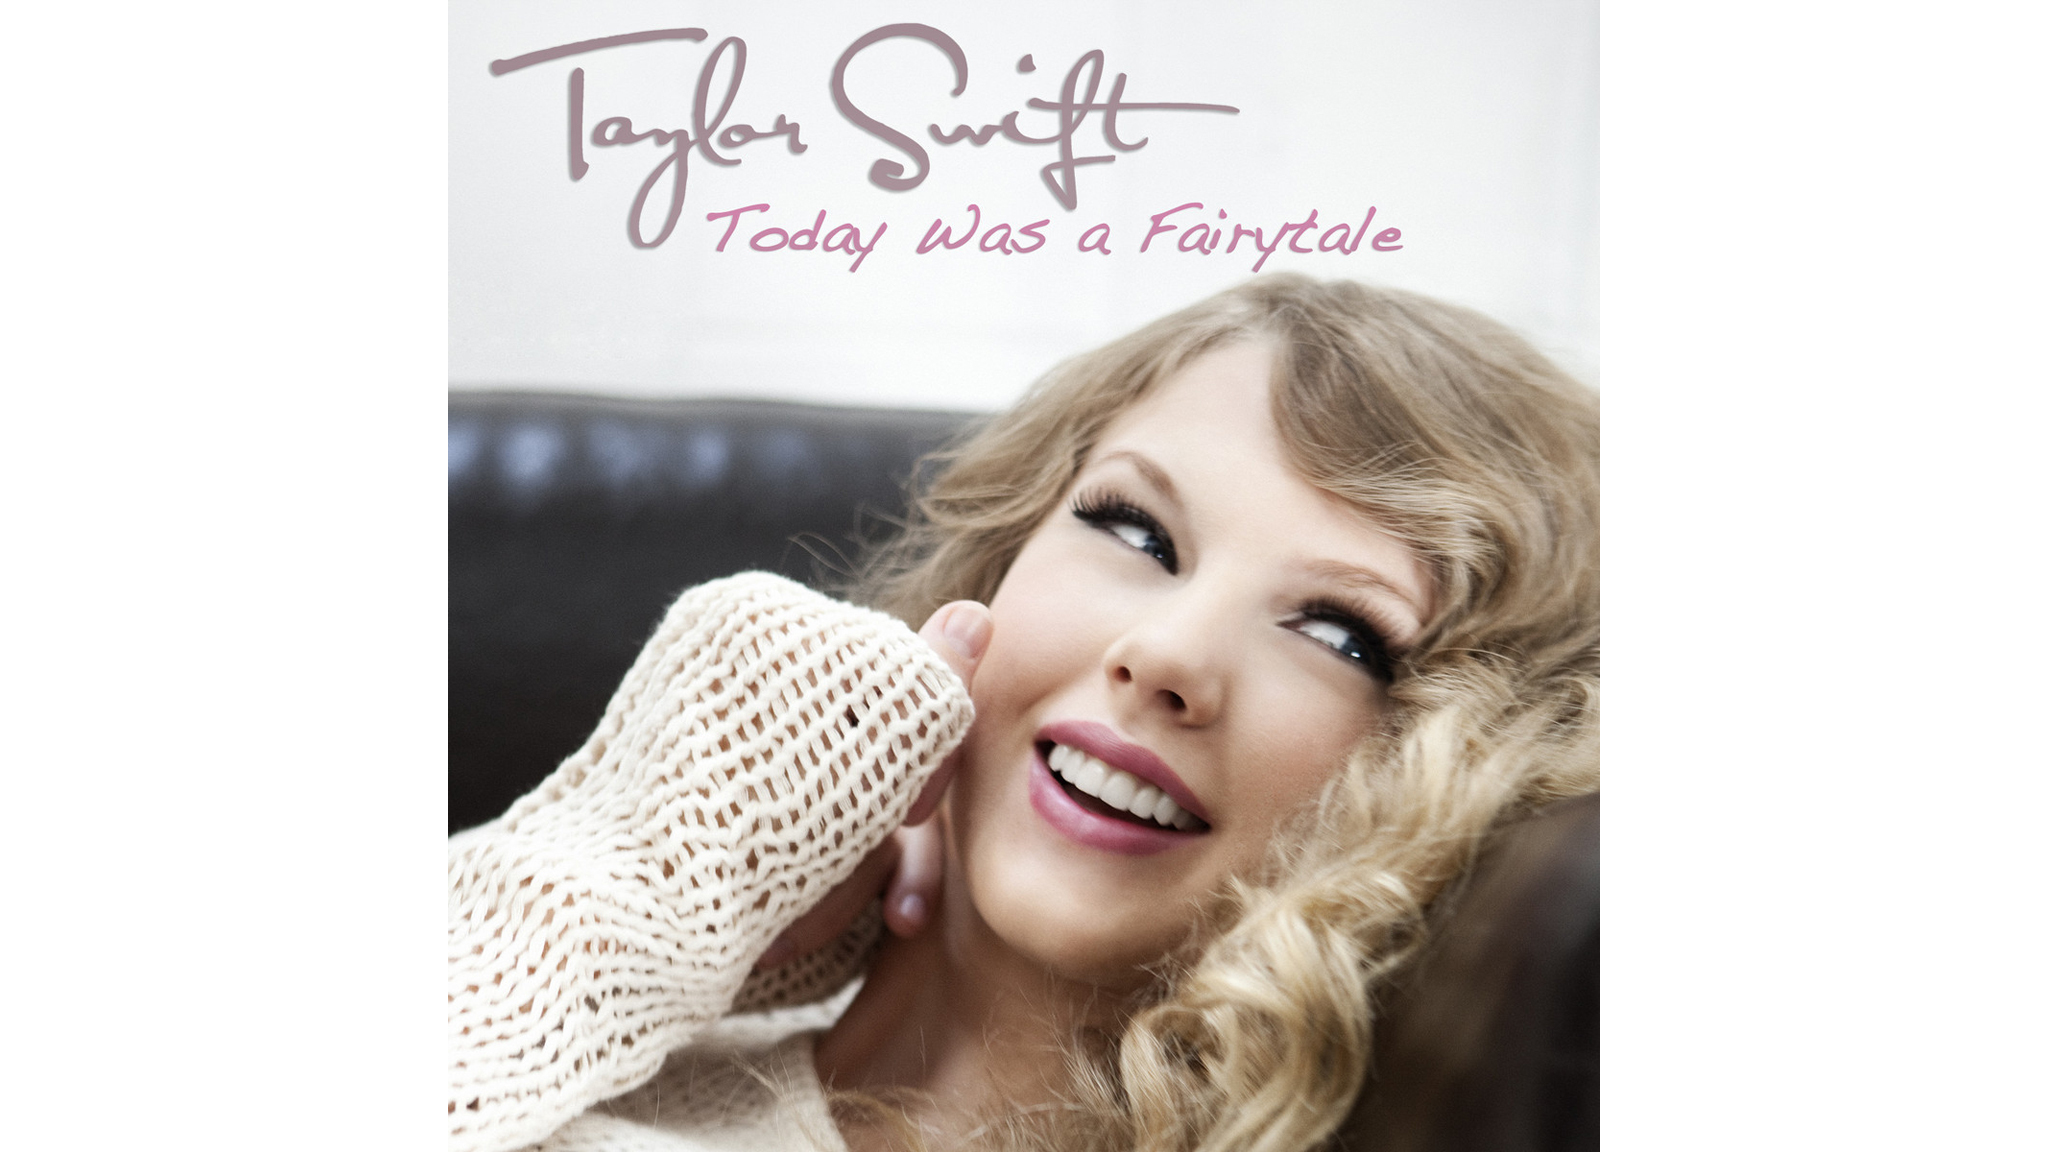 fairytale, taylor swift